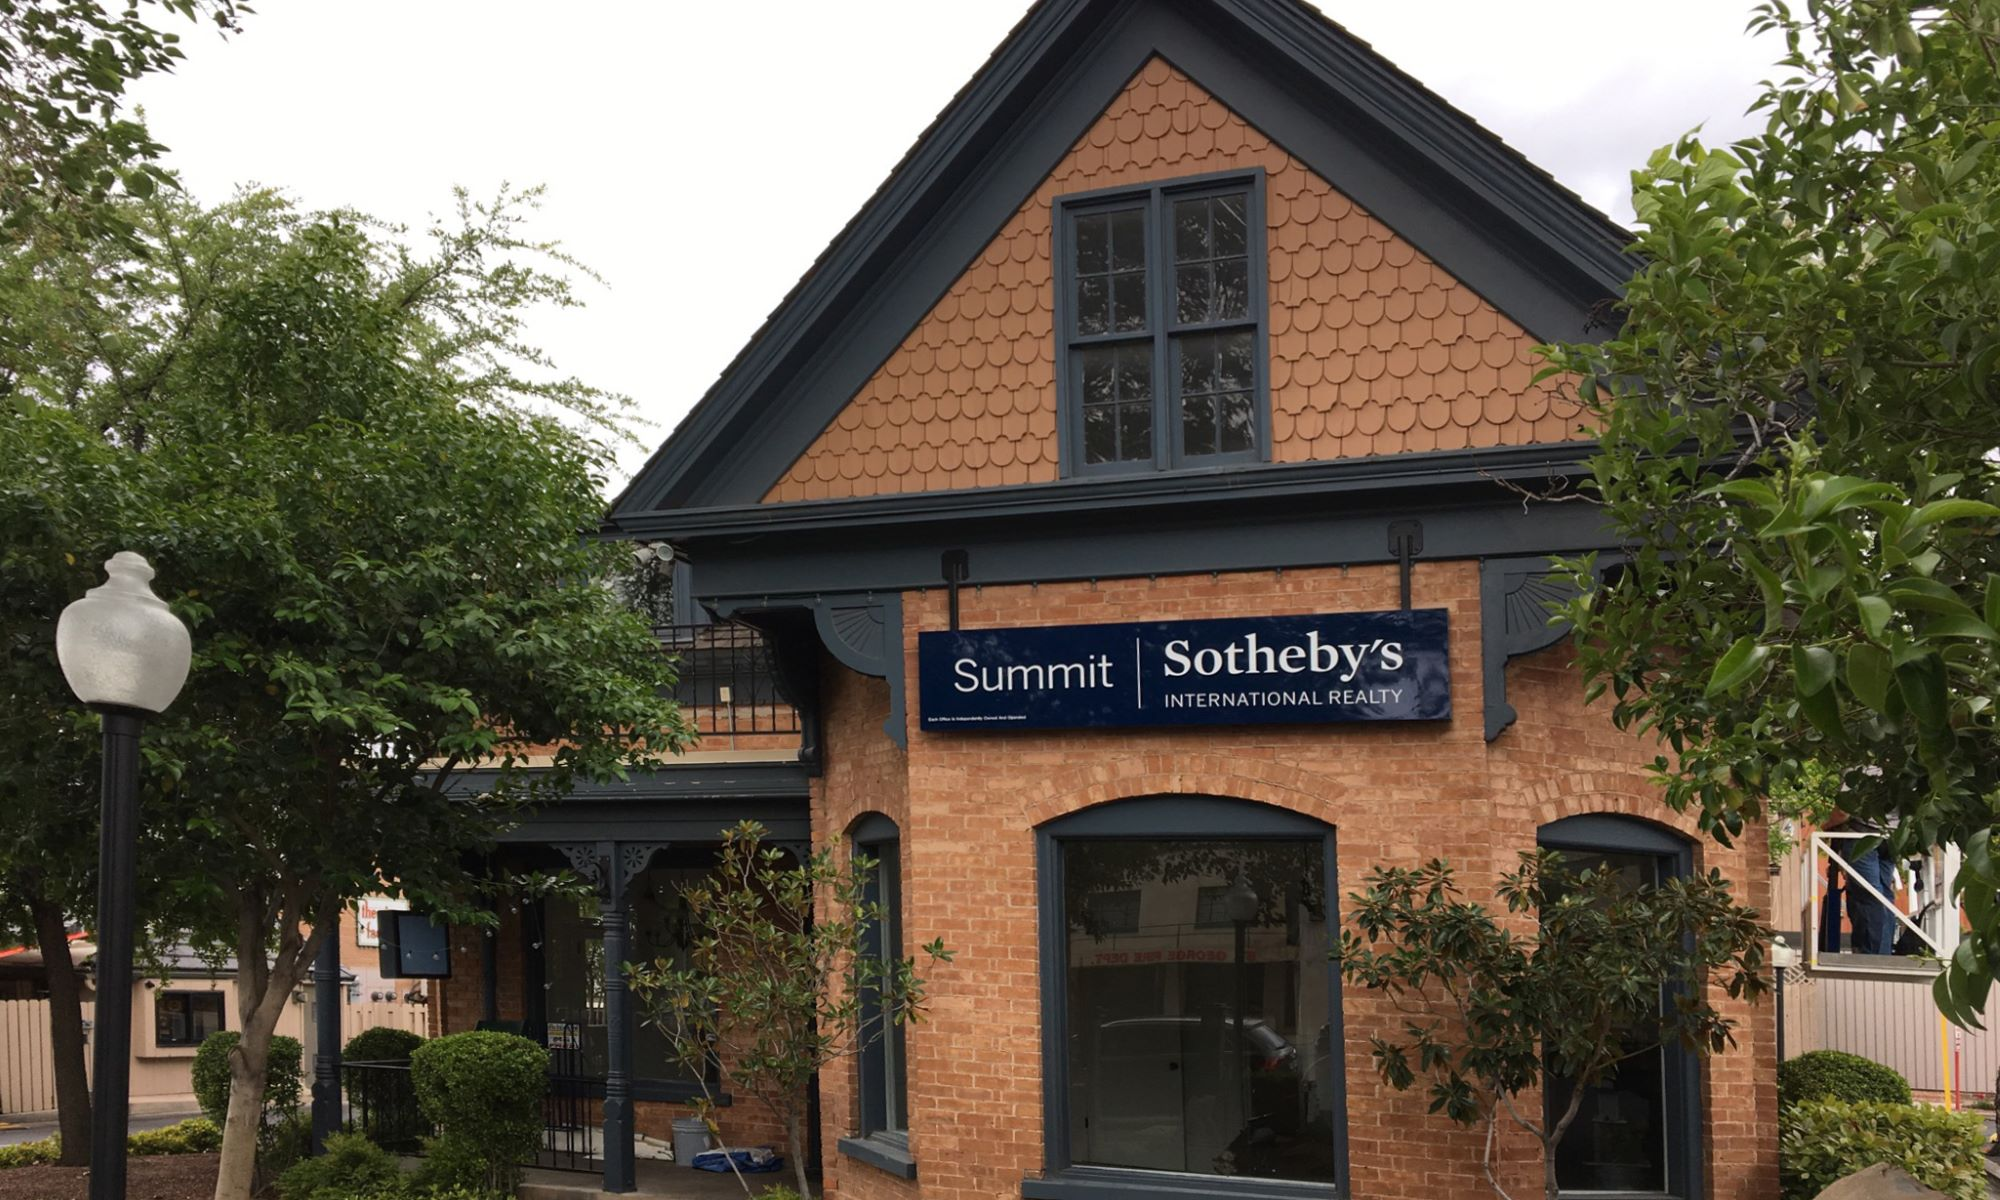 Summit Sotheby's International Realty